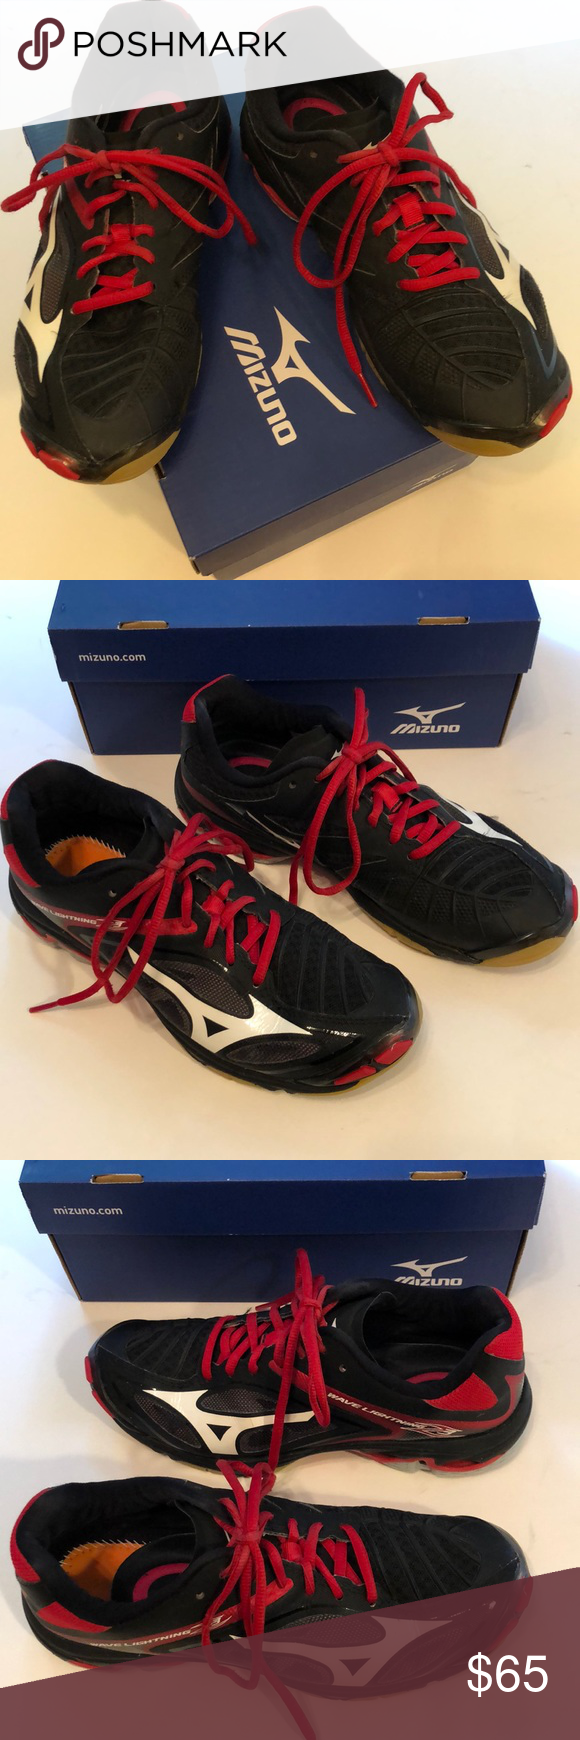 Black And Red Mizuno Volleyball Shoes Volleyball Shoes Mizuno Volleyball Black And Red